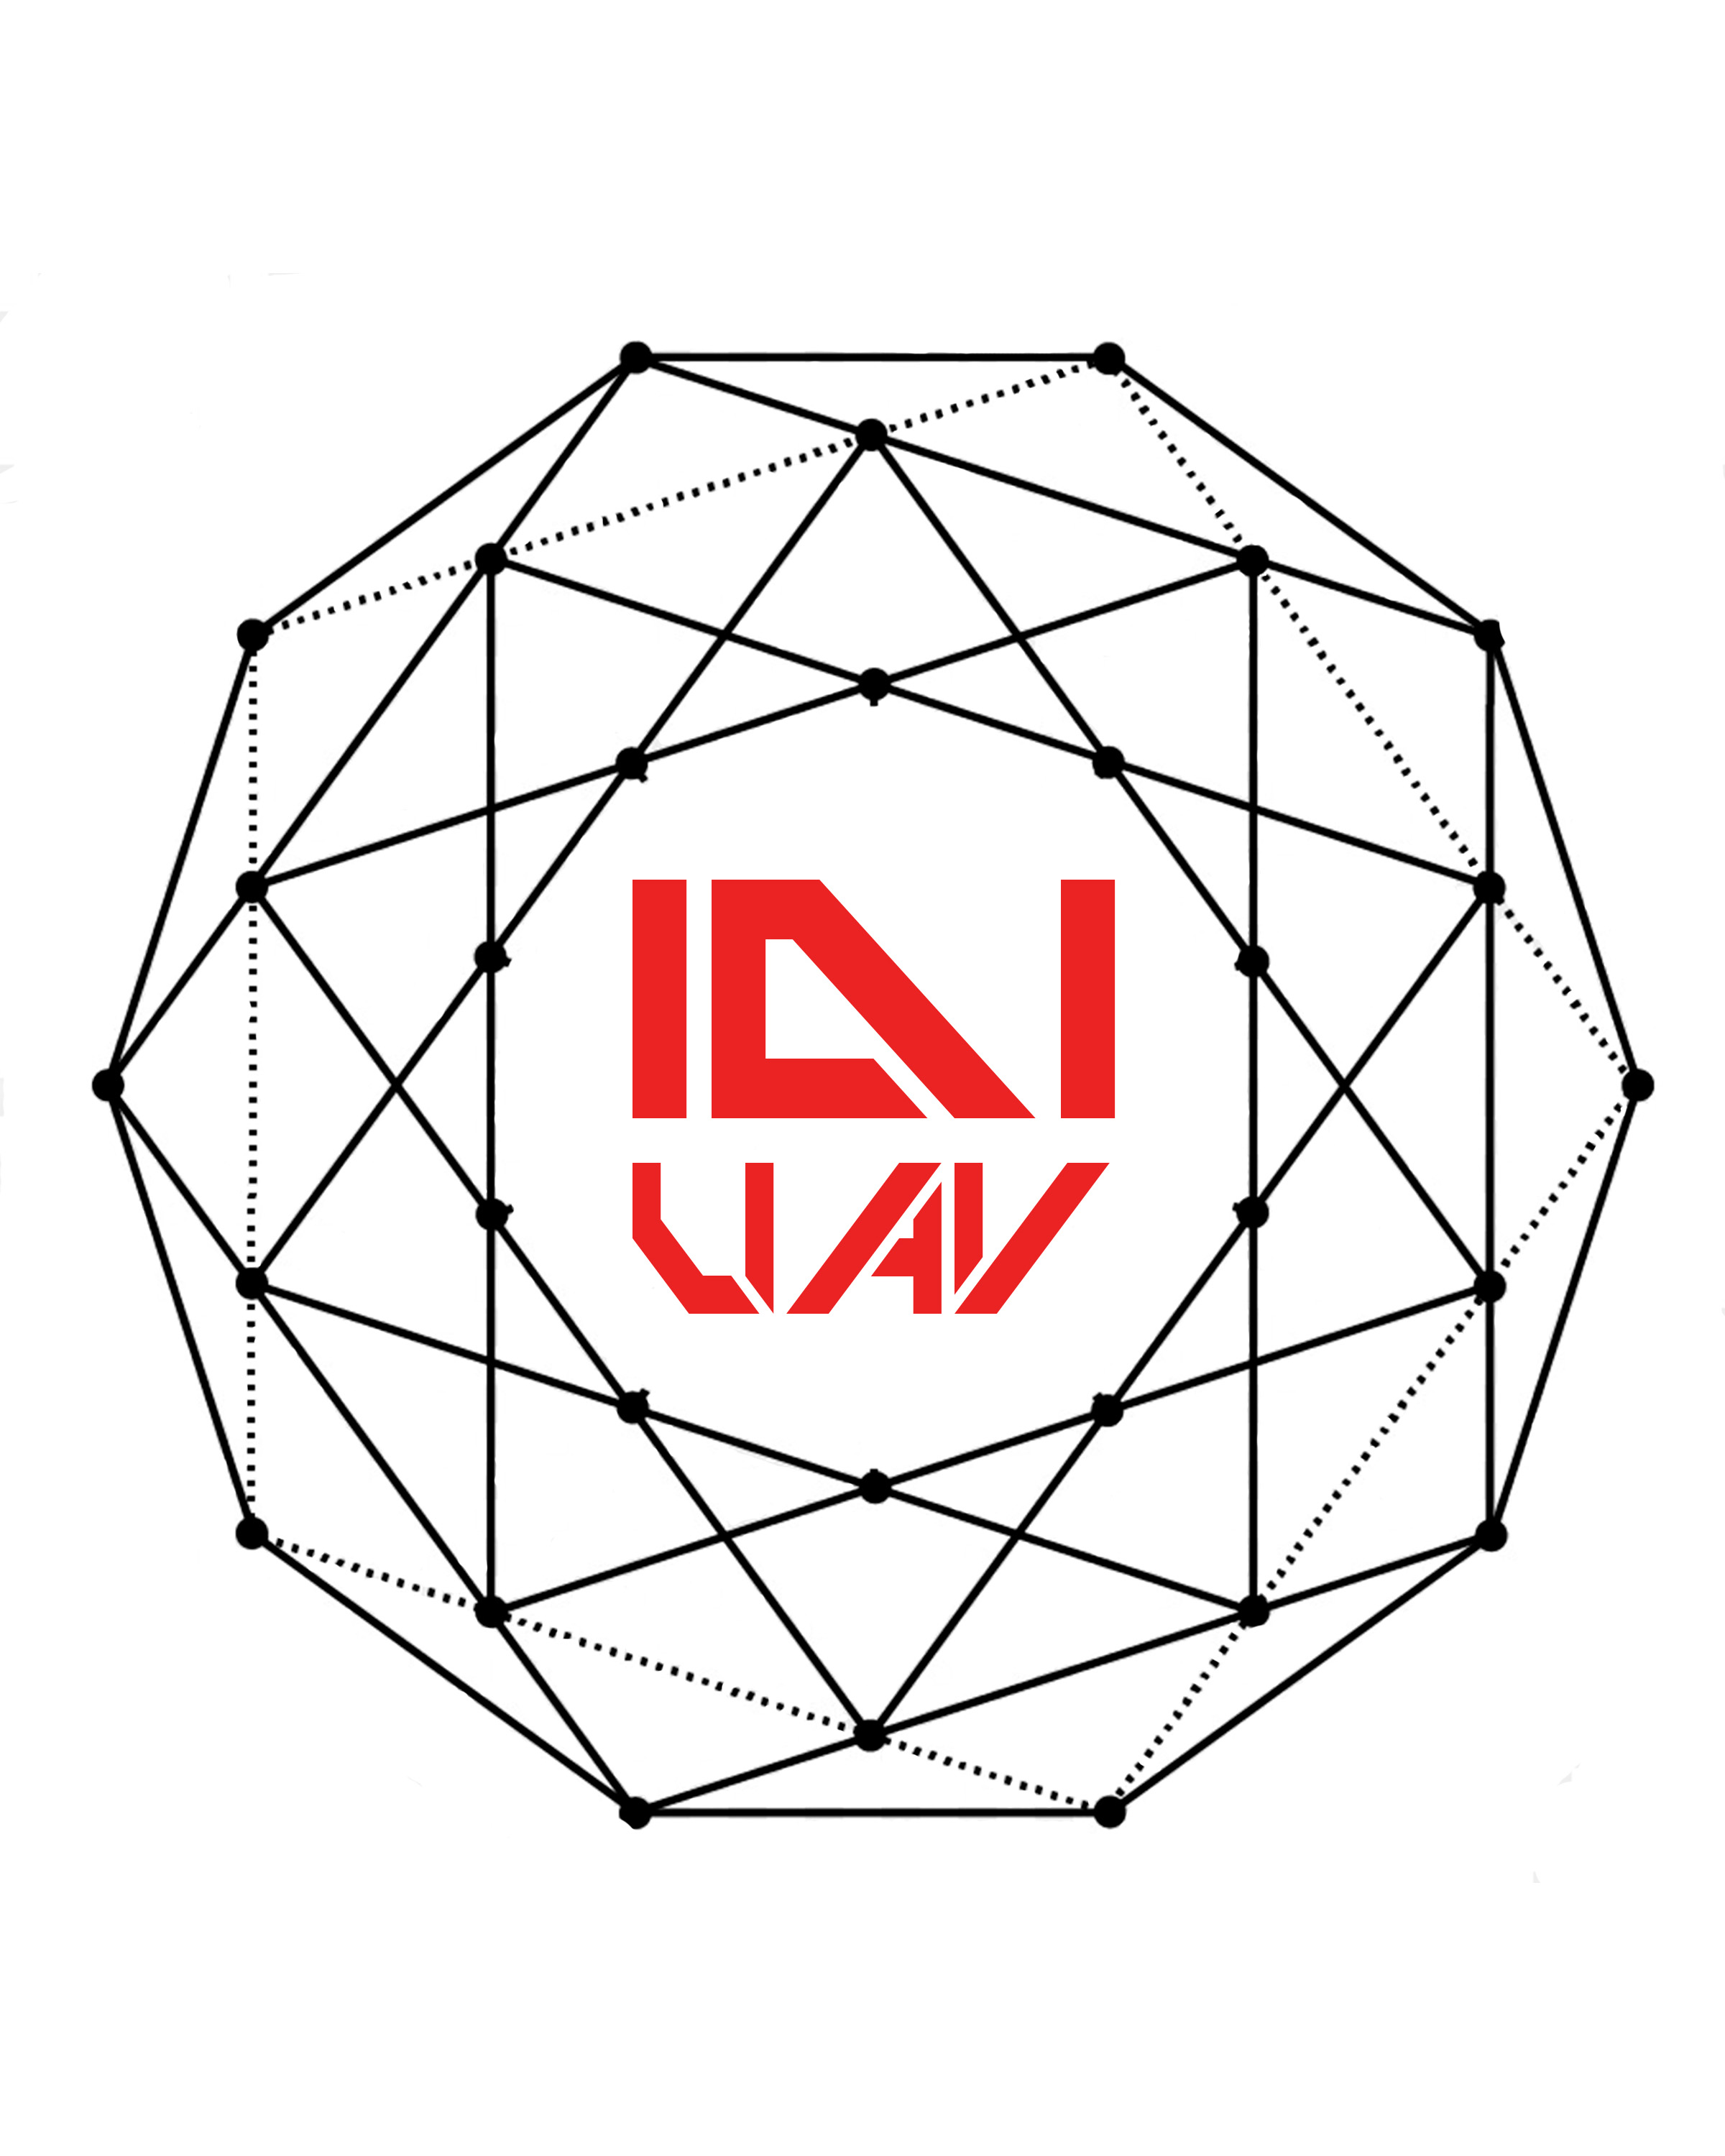 logo-IDIUAV-ElPatio